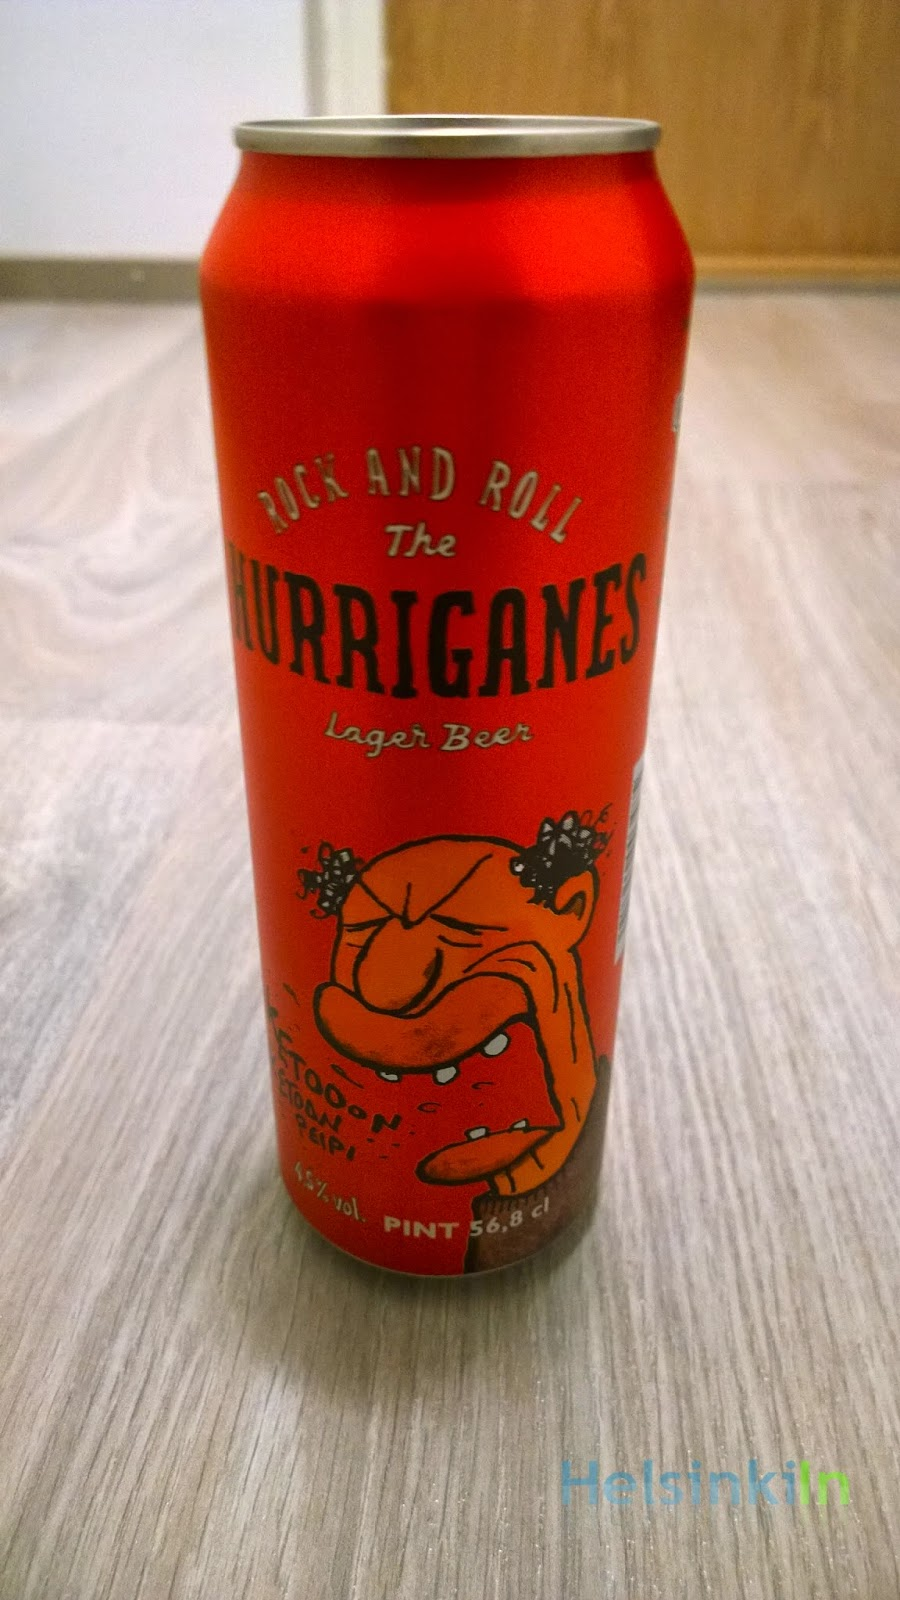 the Rock And Roll Hurriganes Lager Beer